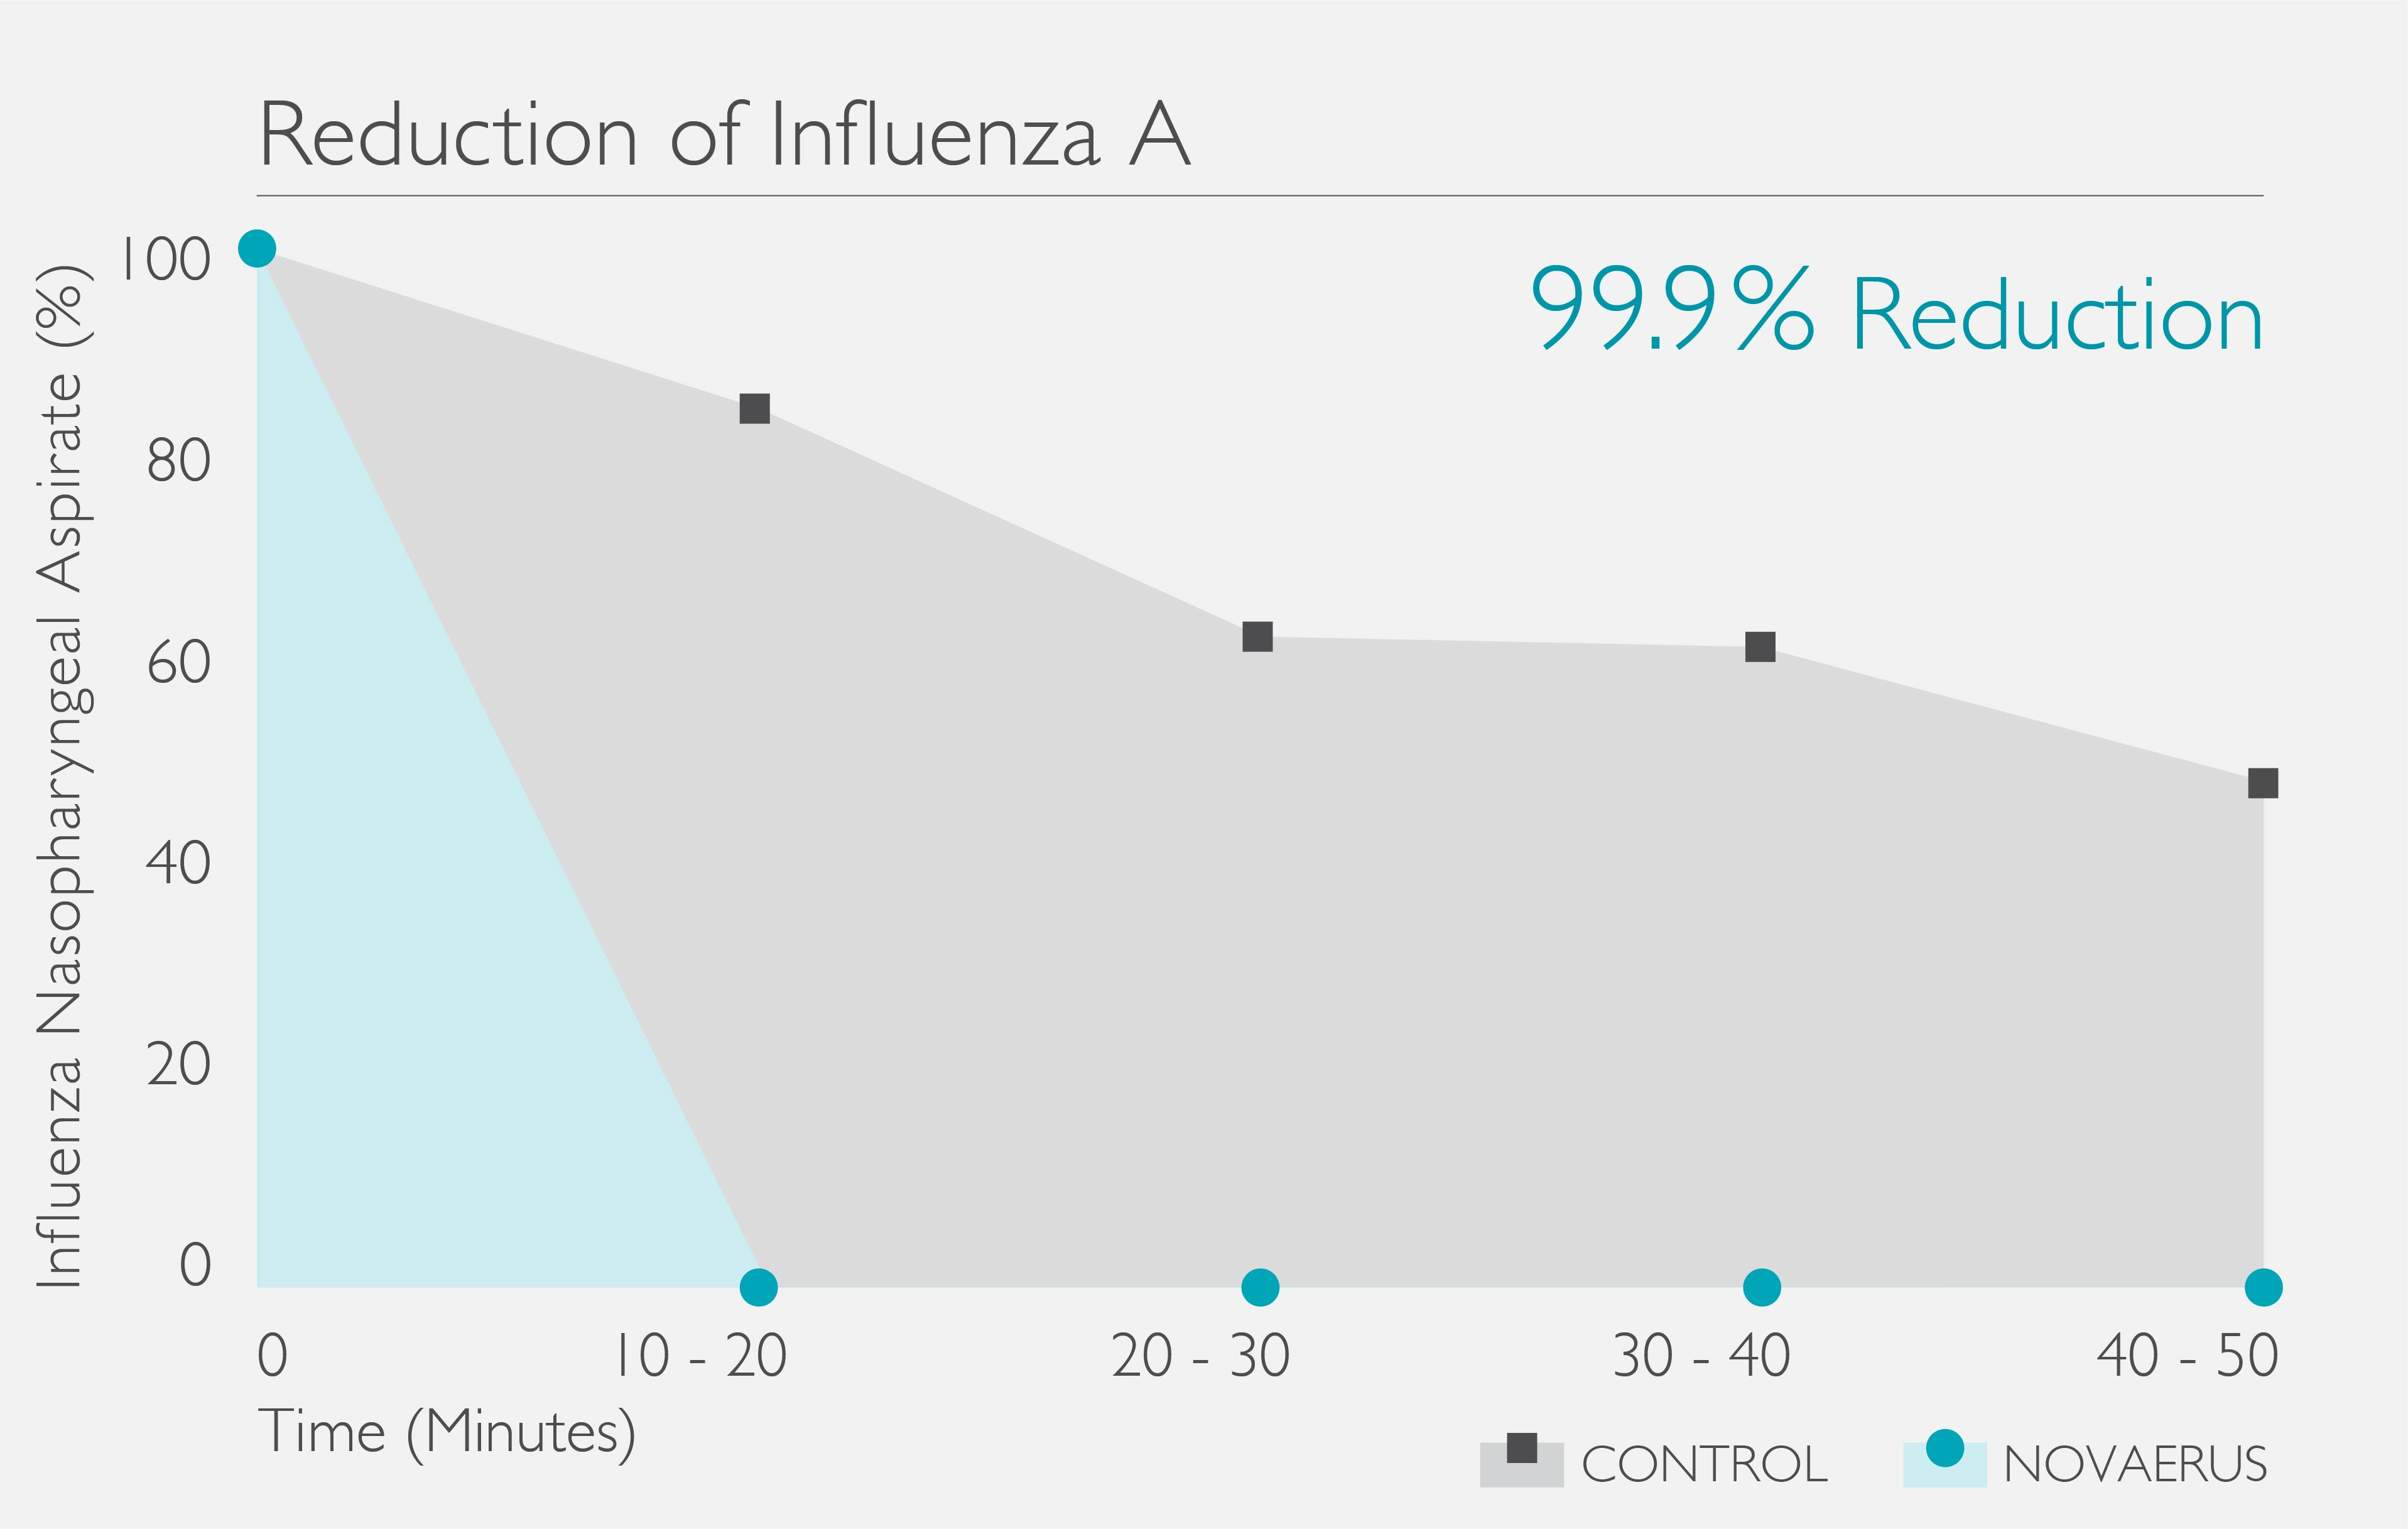 Influenza_Reduction_Graph.jpg